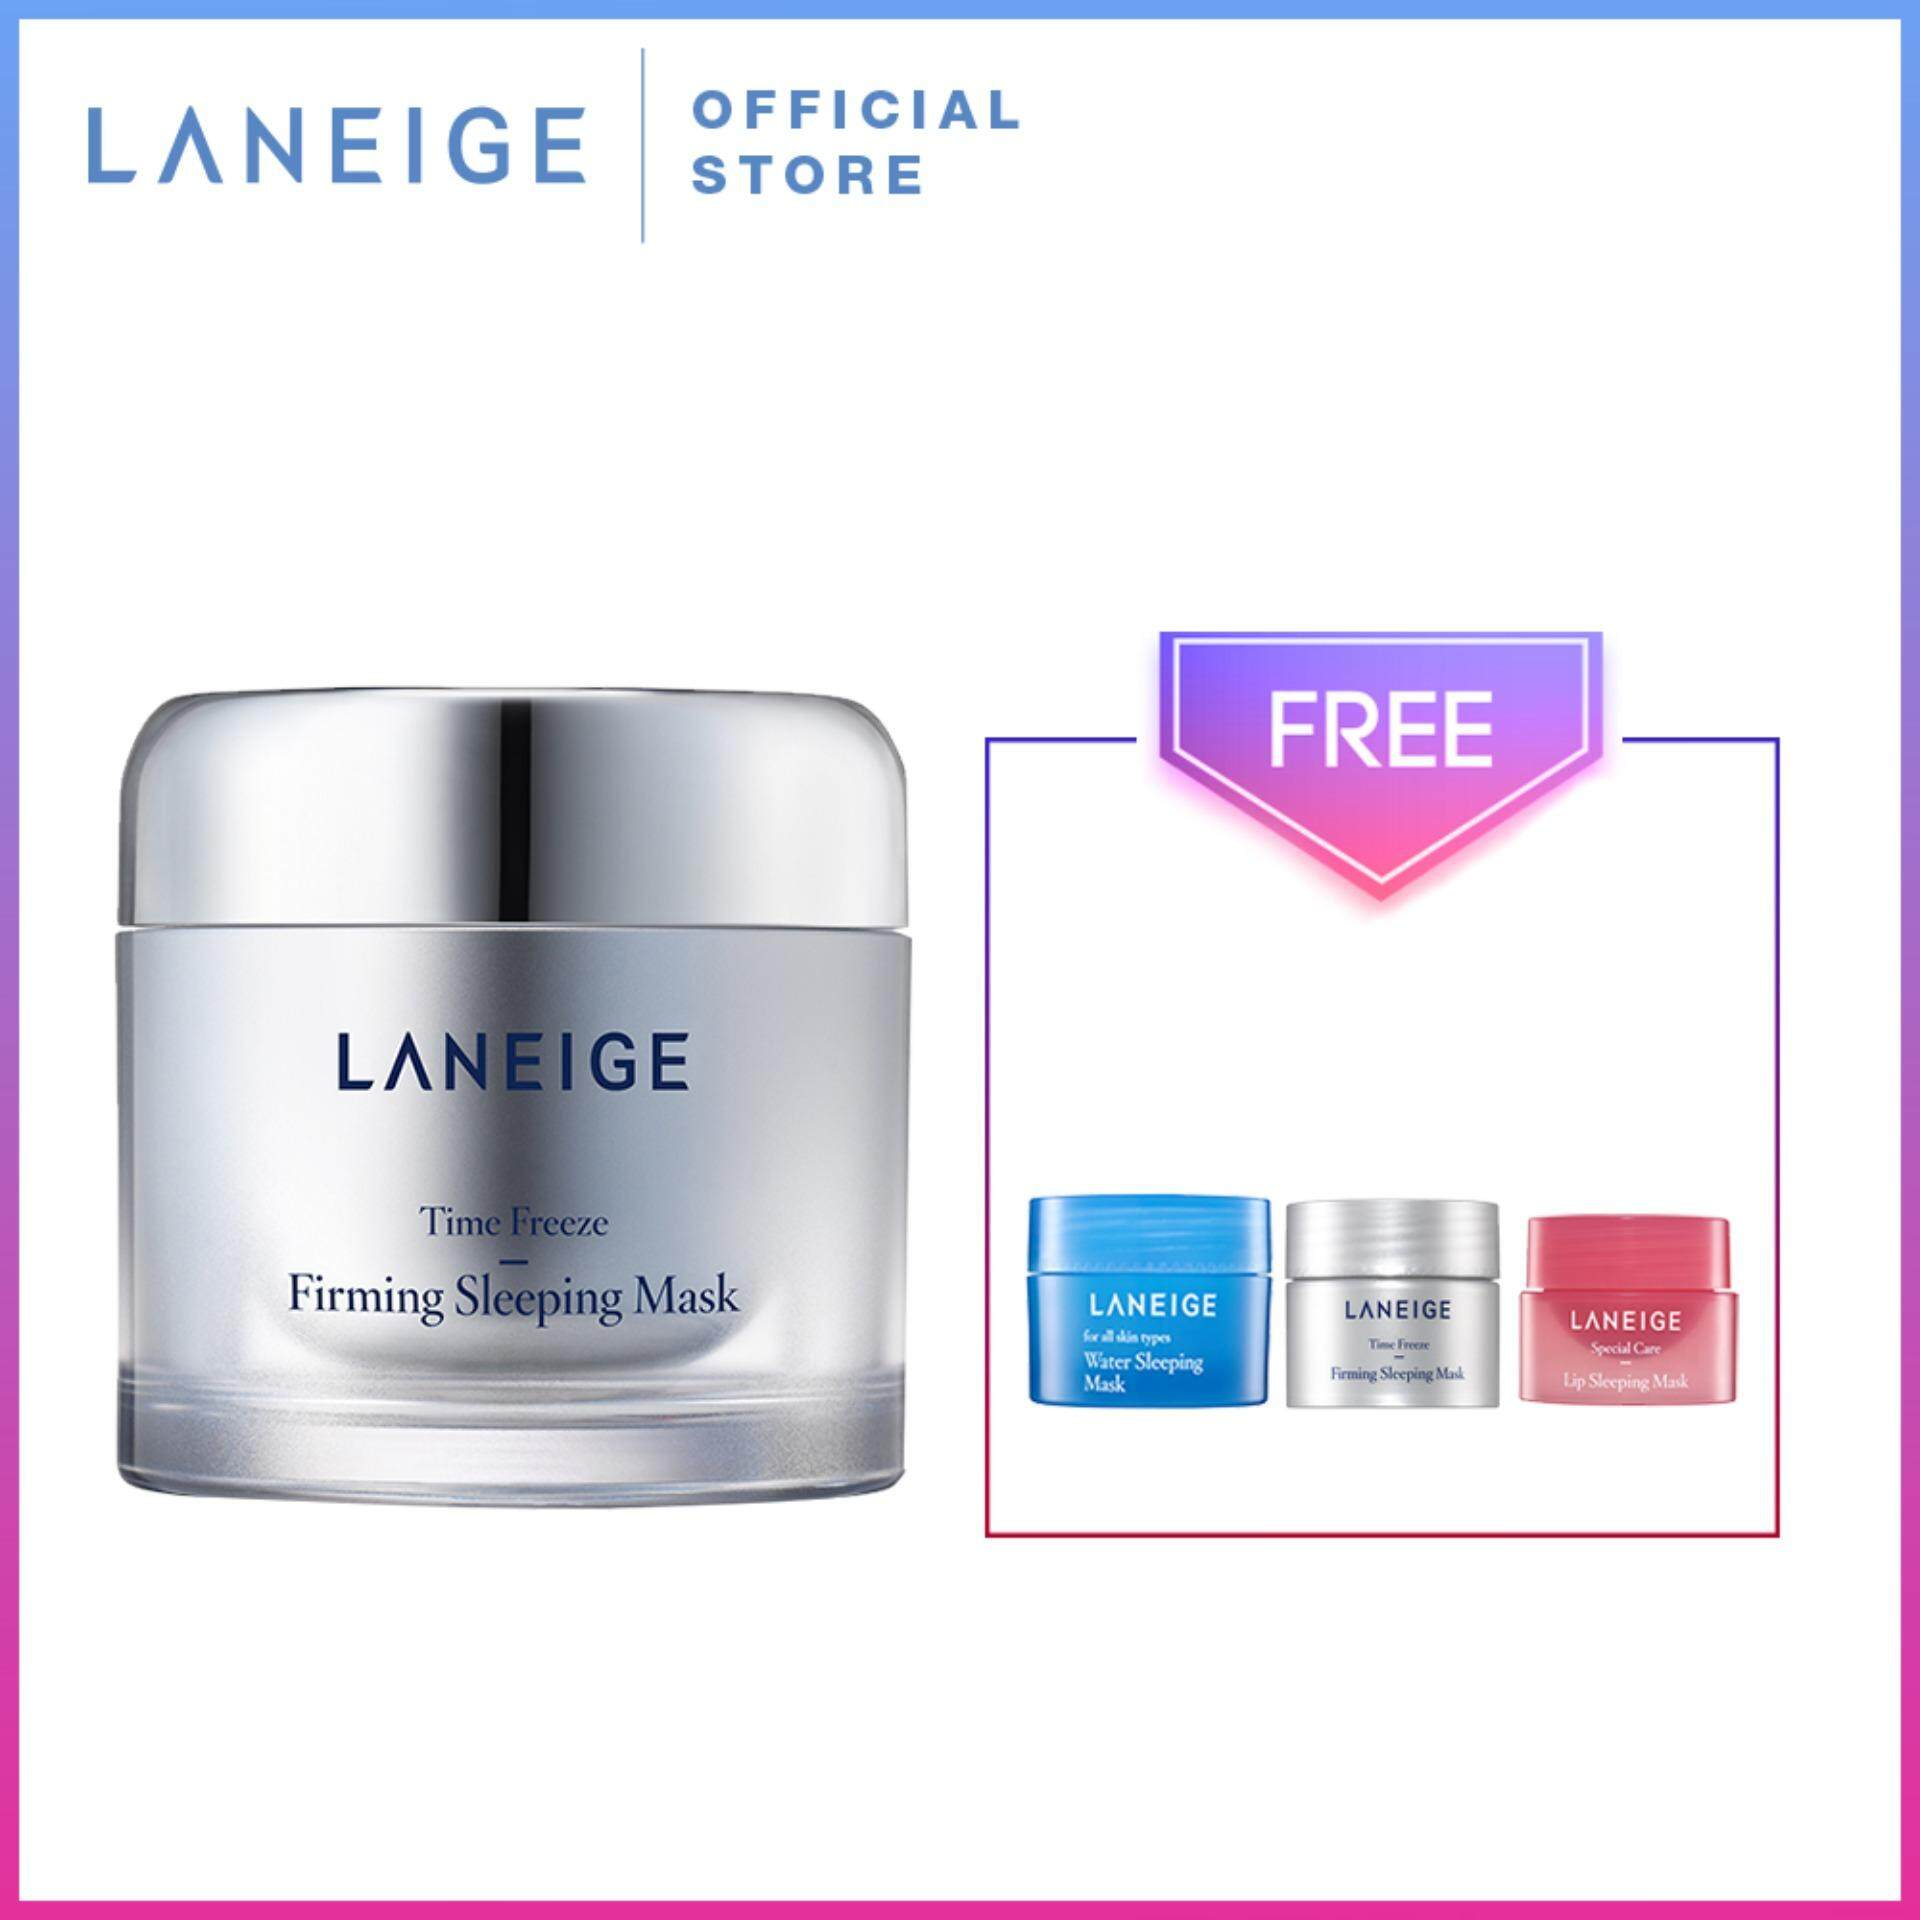 Sell 100 Ori Laneige Cheapest Best Quality My Store Water Sleeping Mask Sampel 4ml Myr 141 Time Freeze Firming